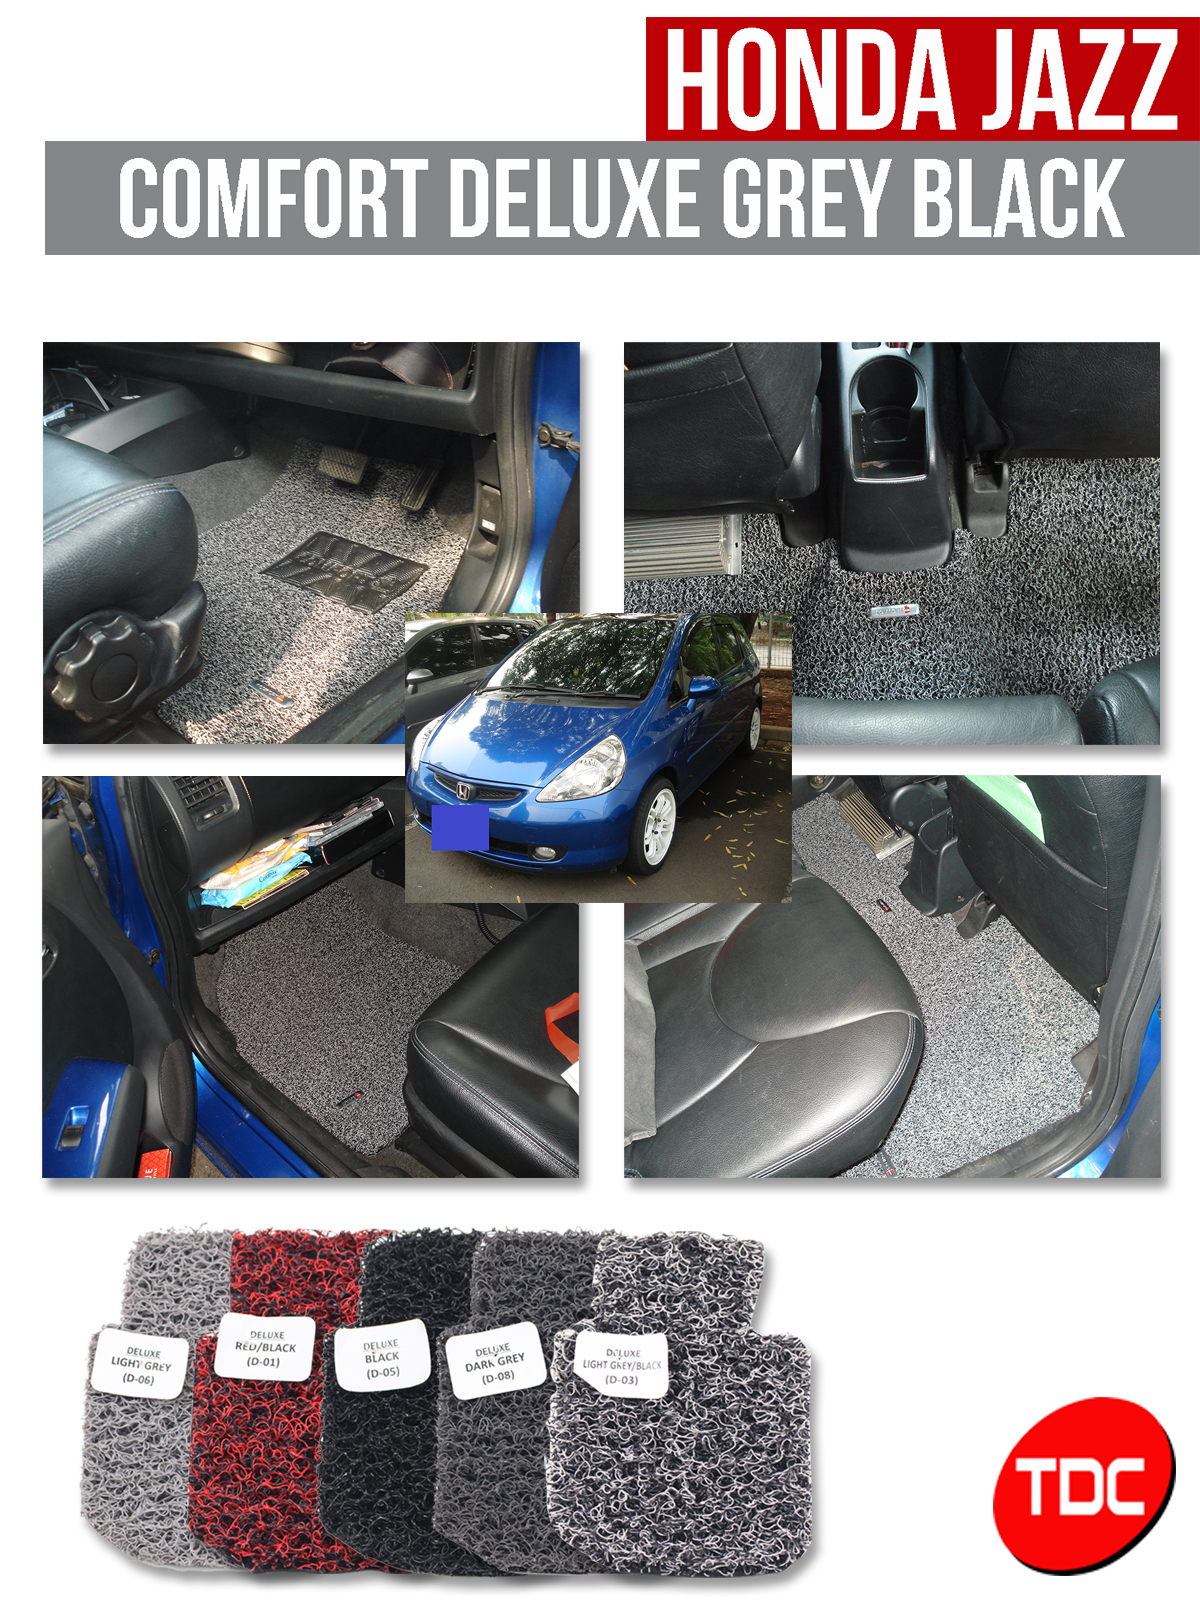 JAZZ ALL NEW > 2013 MOBIL HONDA KARPET COMFORT DELUXE 12